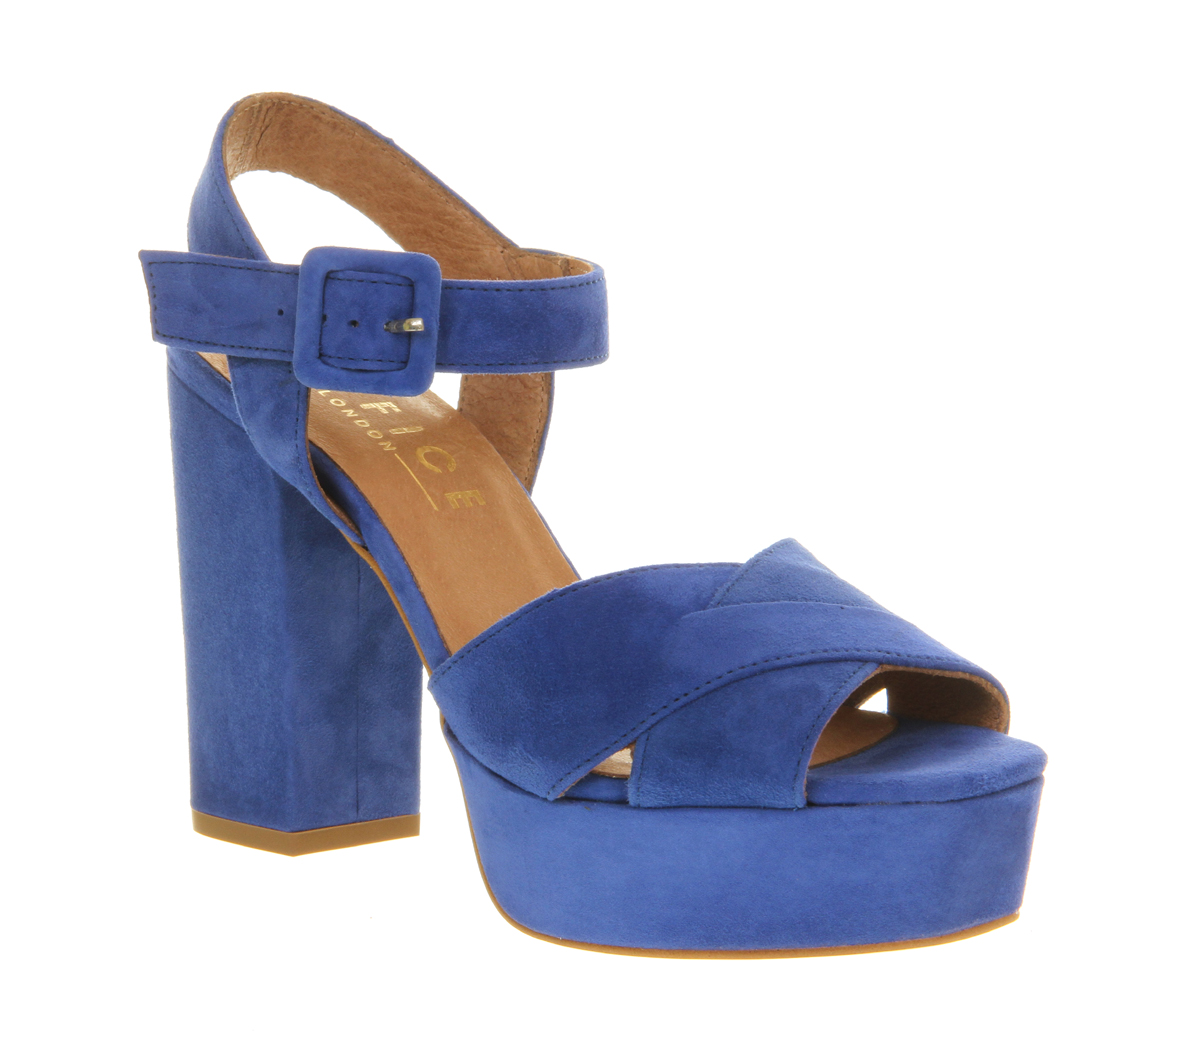 Womens Office Onward Platform Sandal Blue Suede Heels | eBay